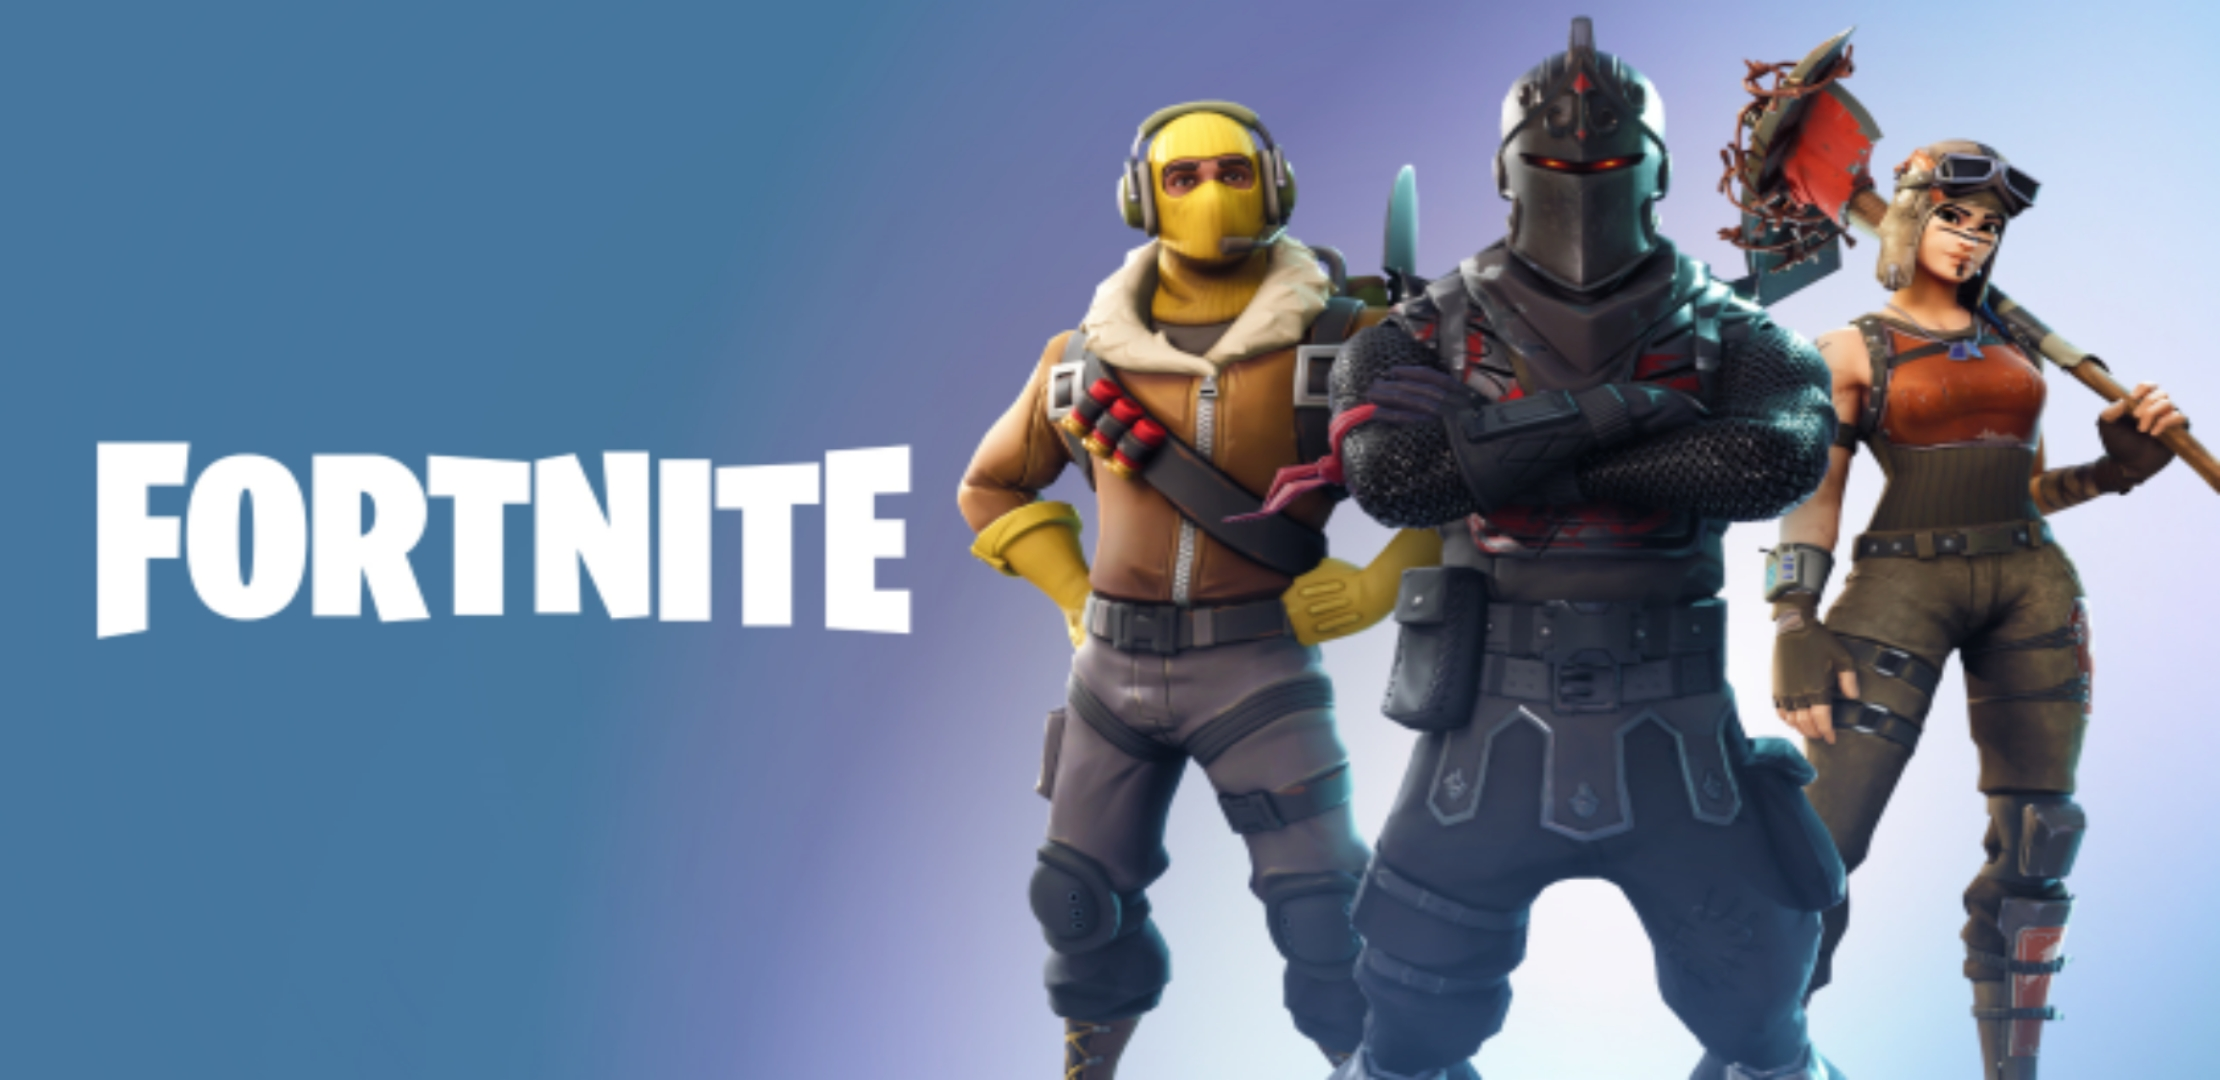 Hands-on] Fortnite for Android, the most frustrating version